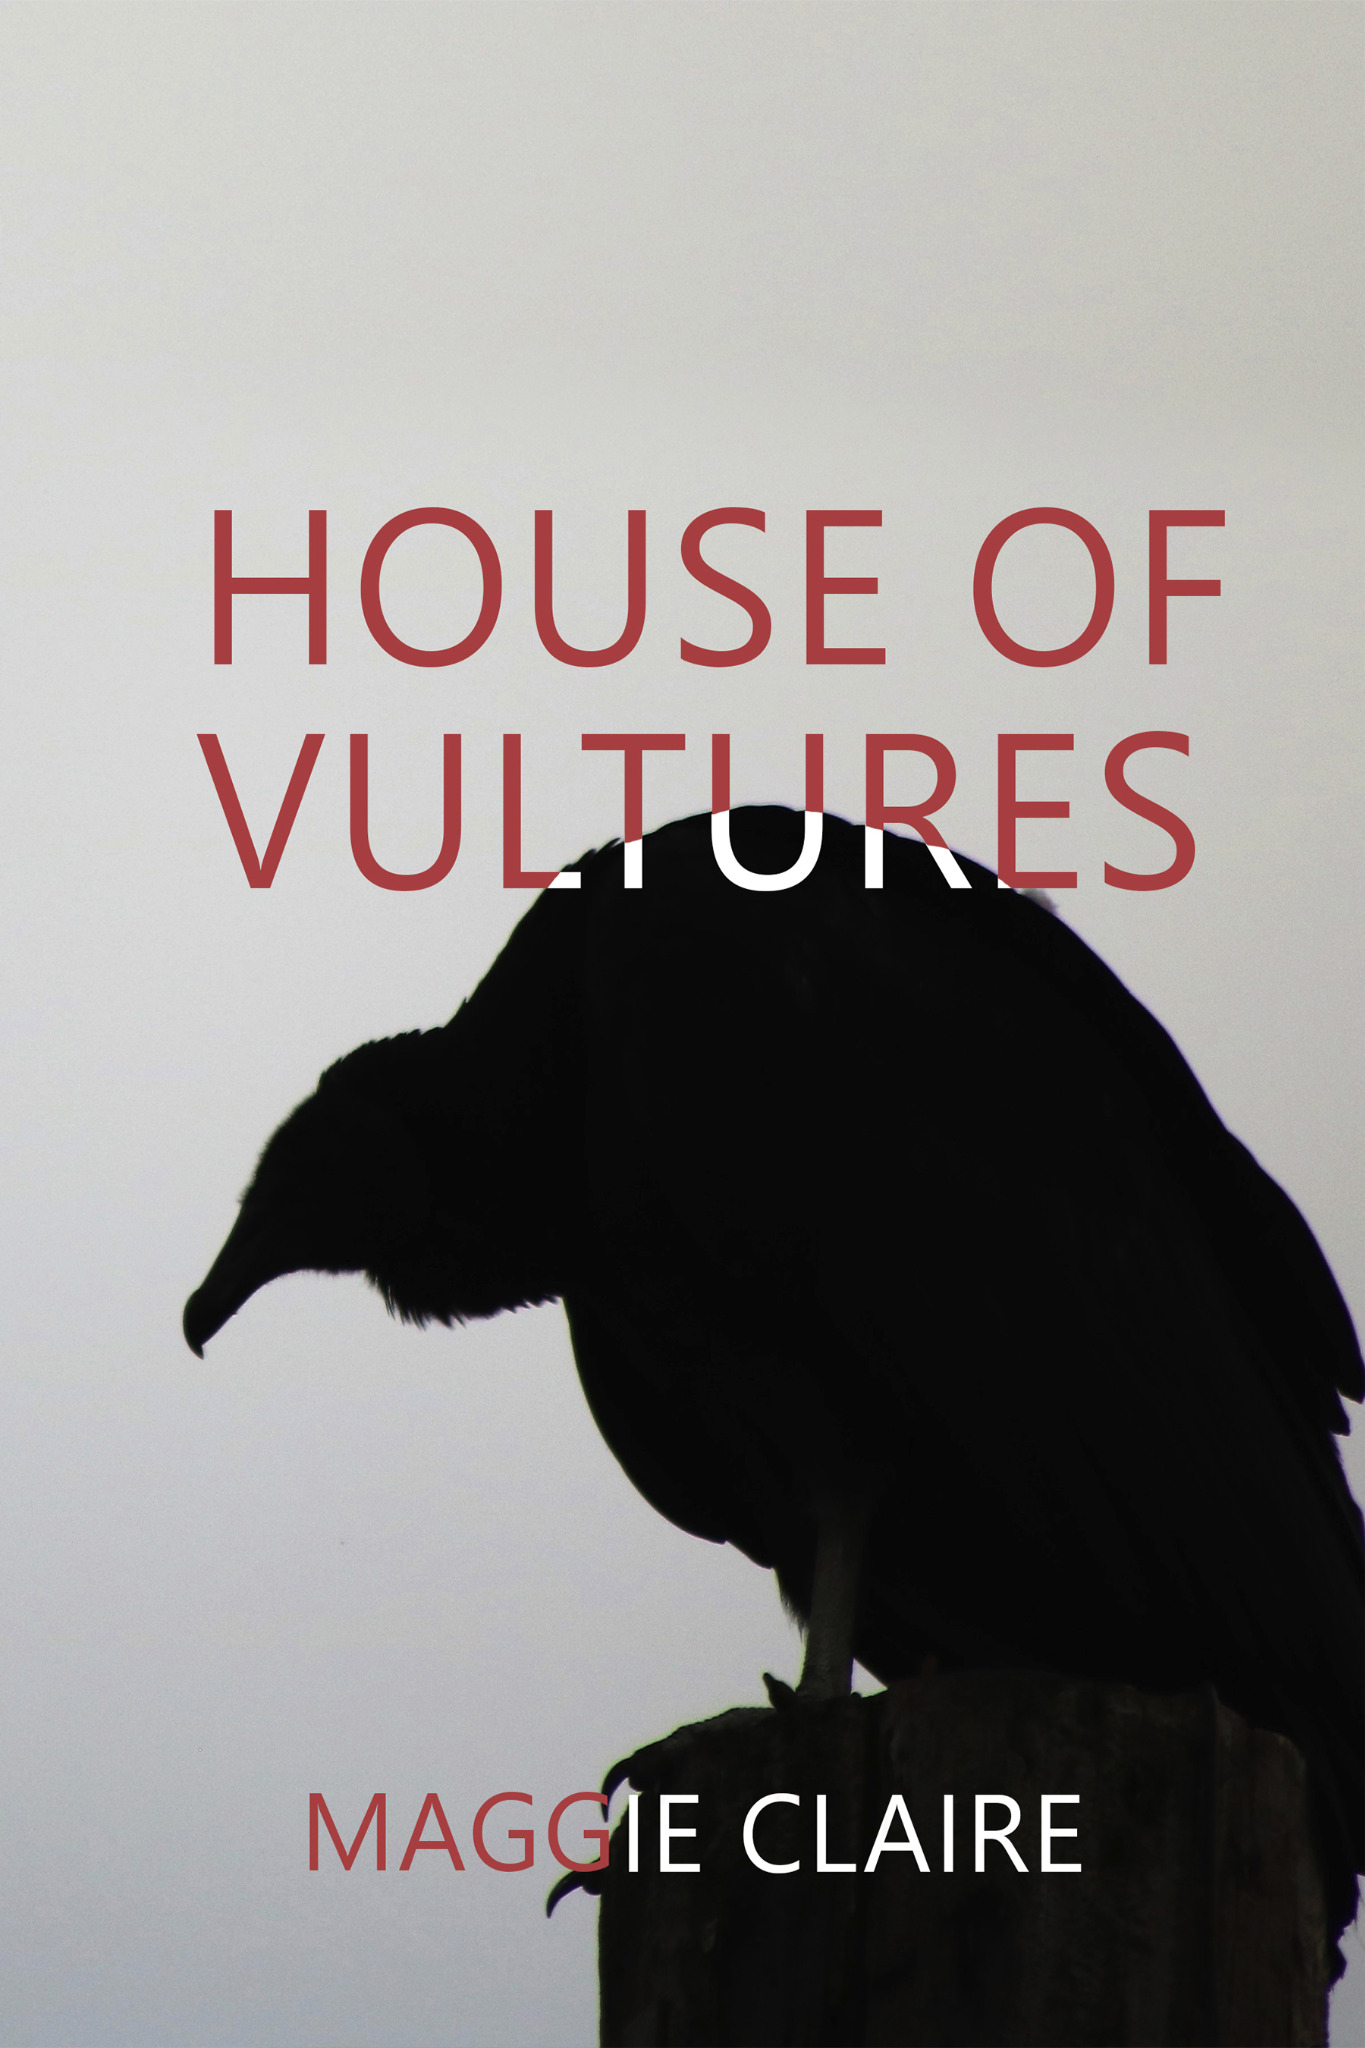 House of Vultures